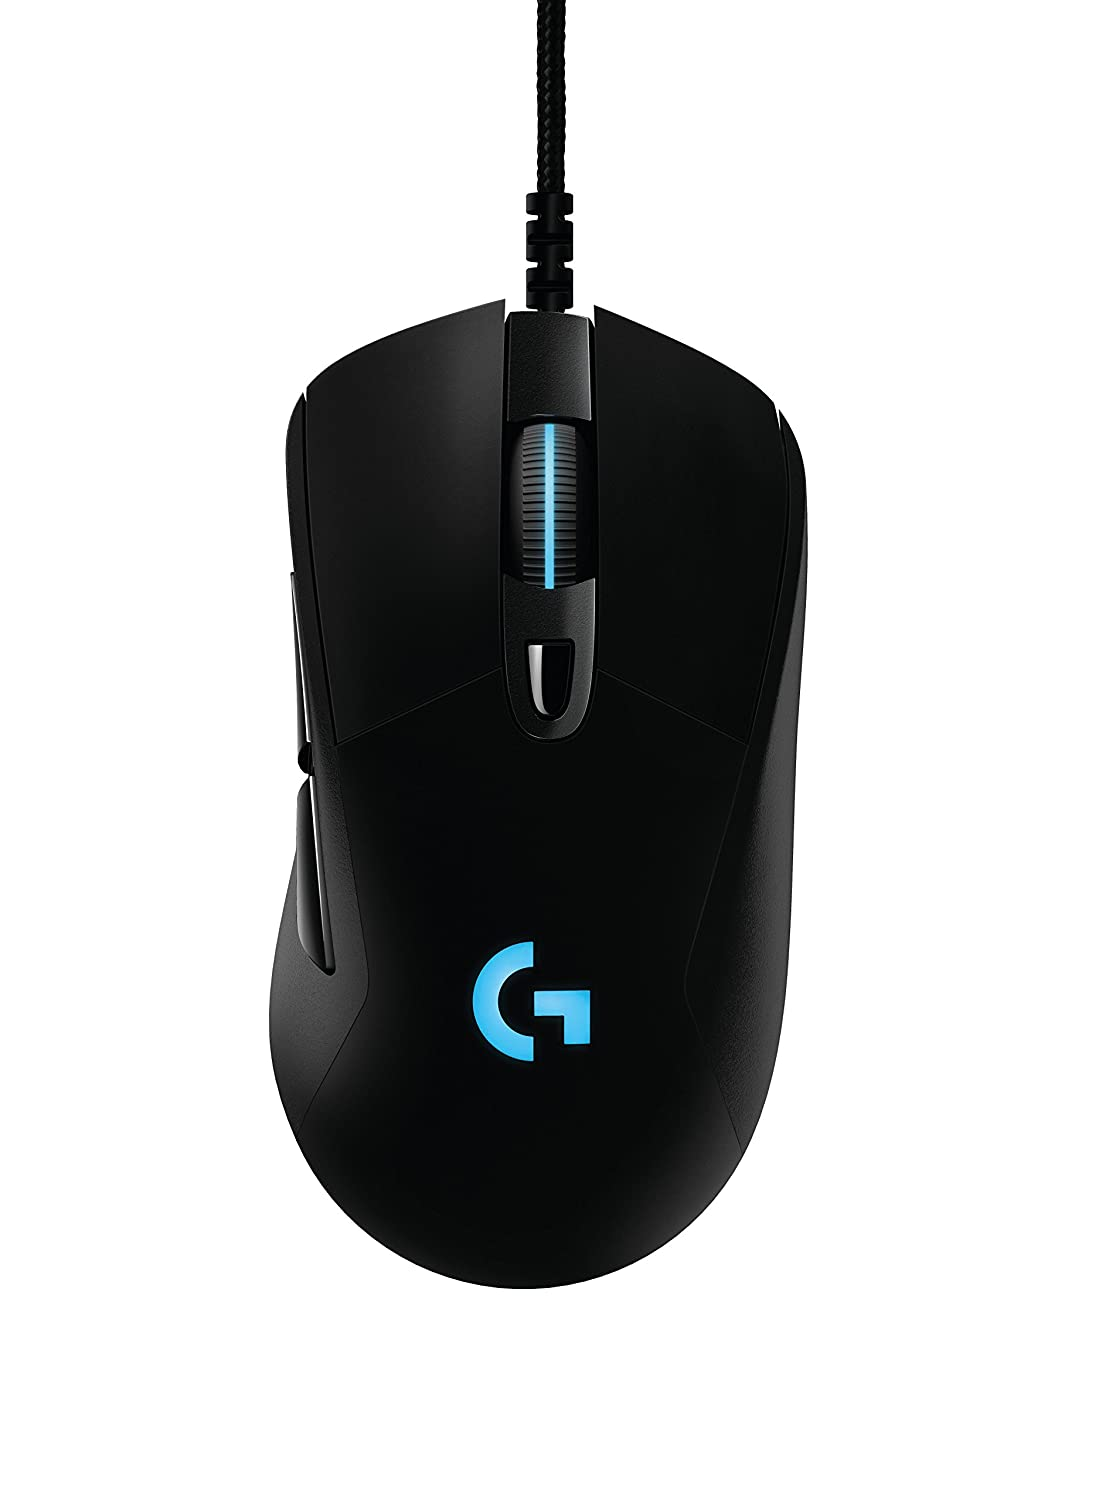 Logitech G403 Prodigy Review